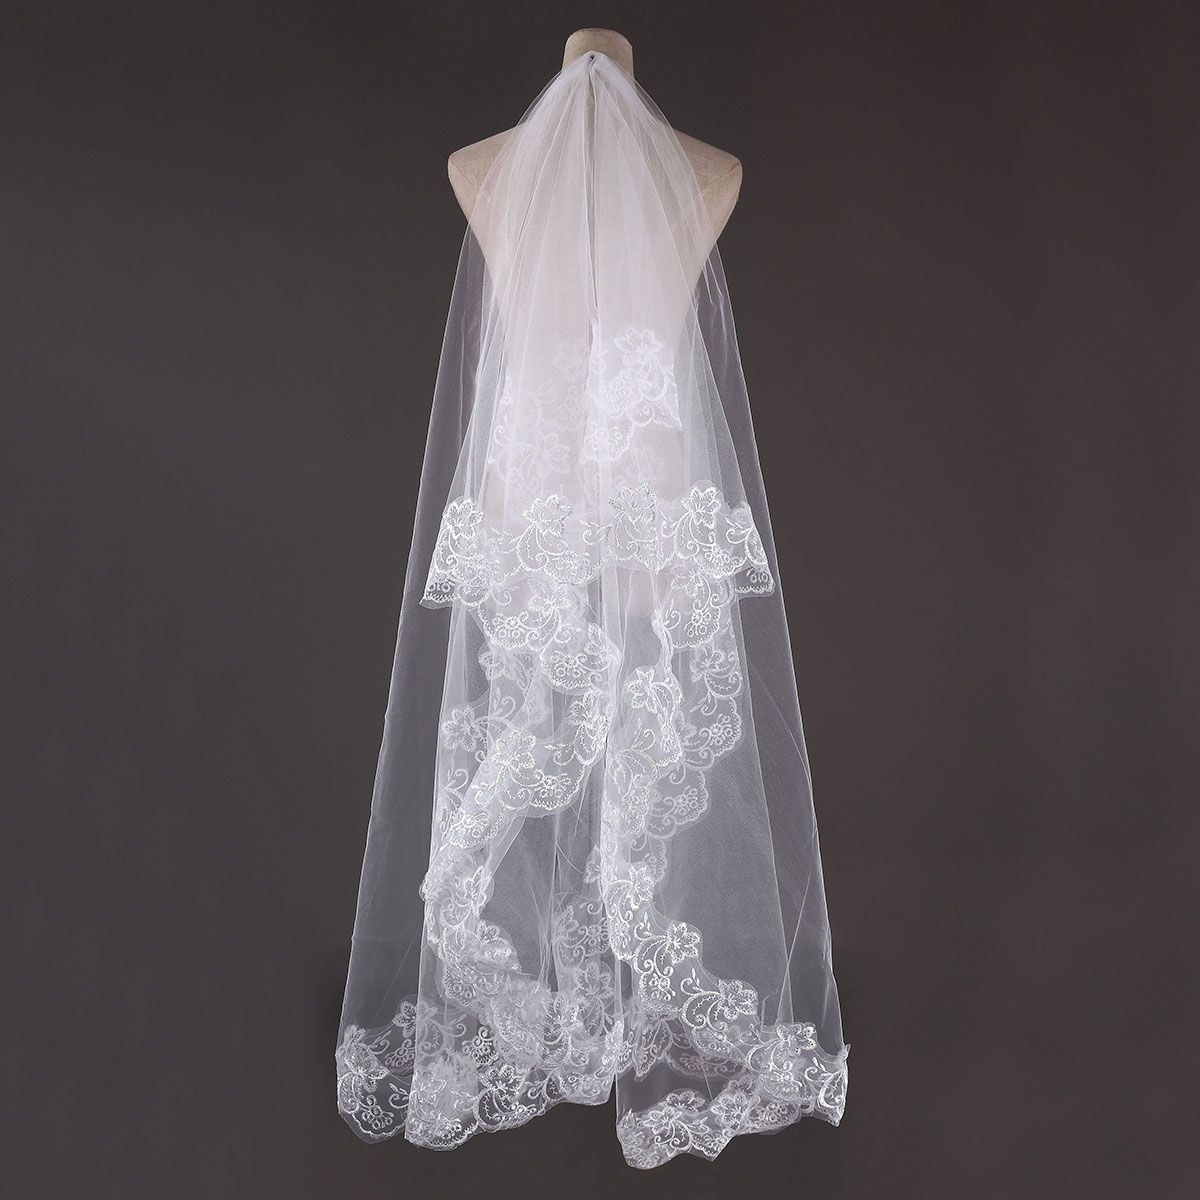 3M Bride White Ivory Elegant Cathedral Length Wedding Bridal Veil With Lace Edge